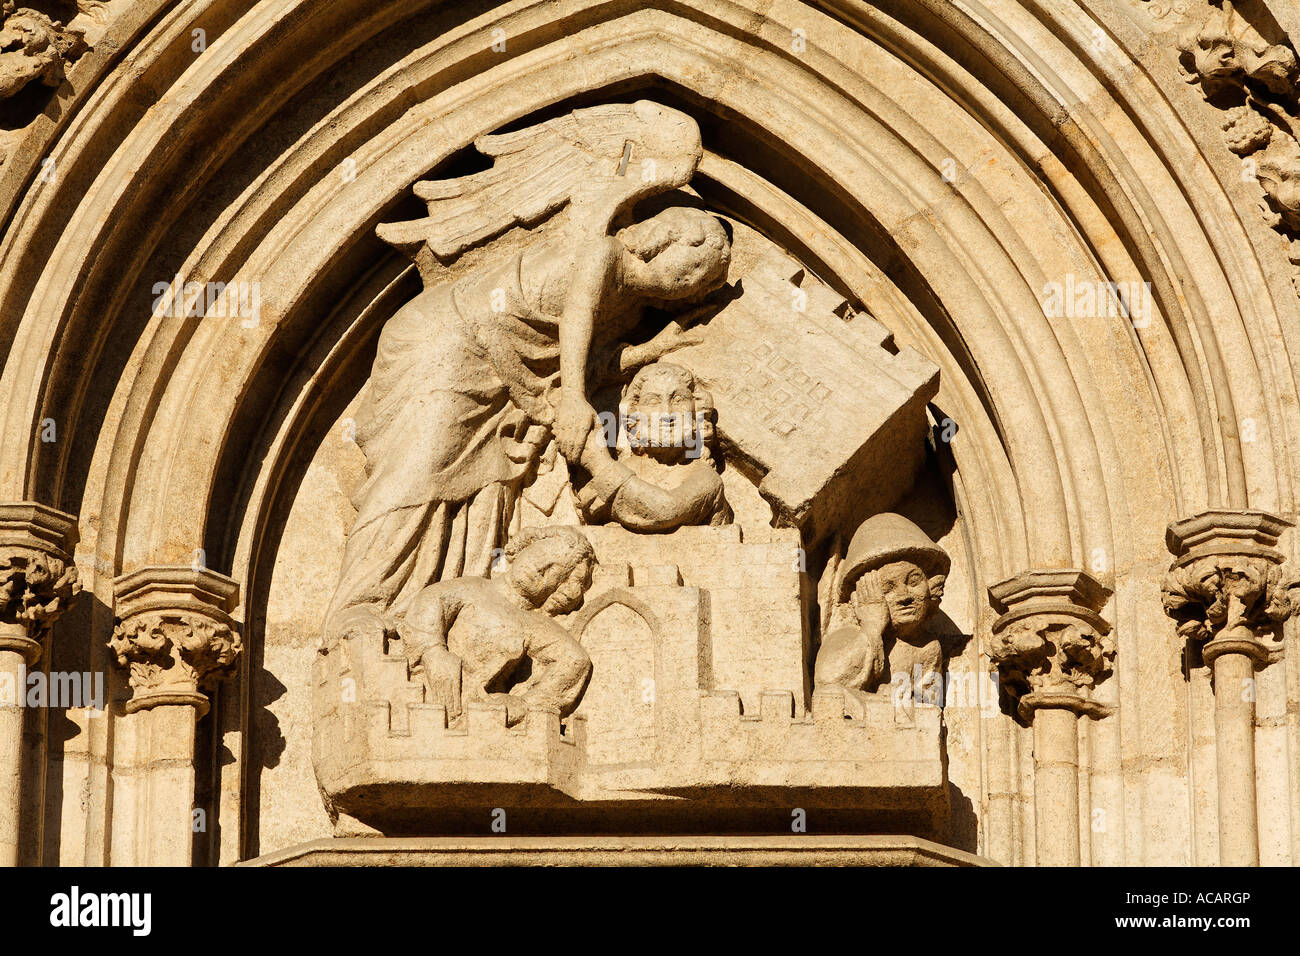 Tympanum relief at southern west portal of St. Peter cathedral, Regensburg, Upper Palatinate, Bavaria, Germany - Stock Image